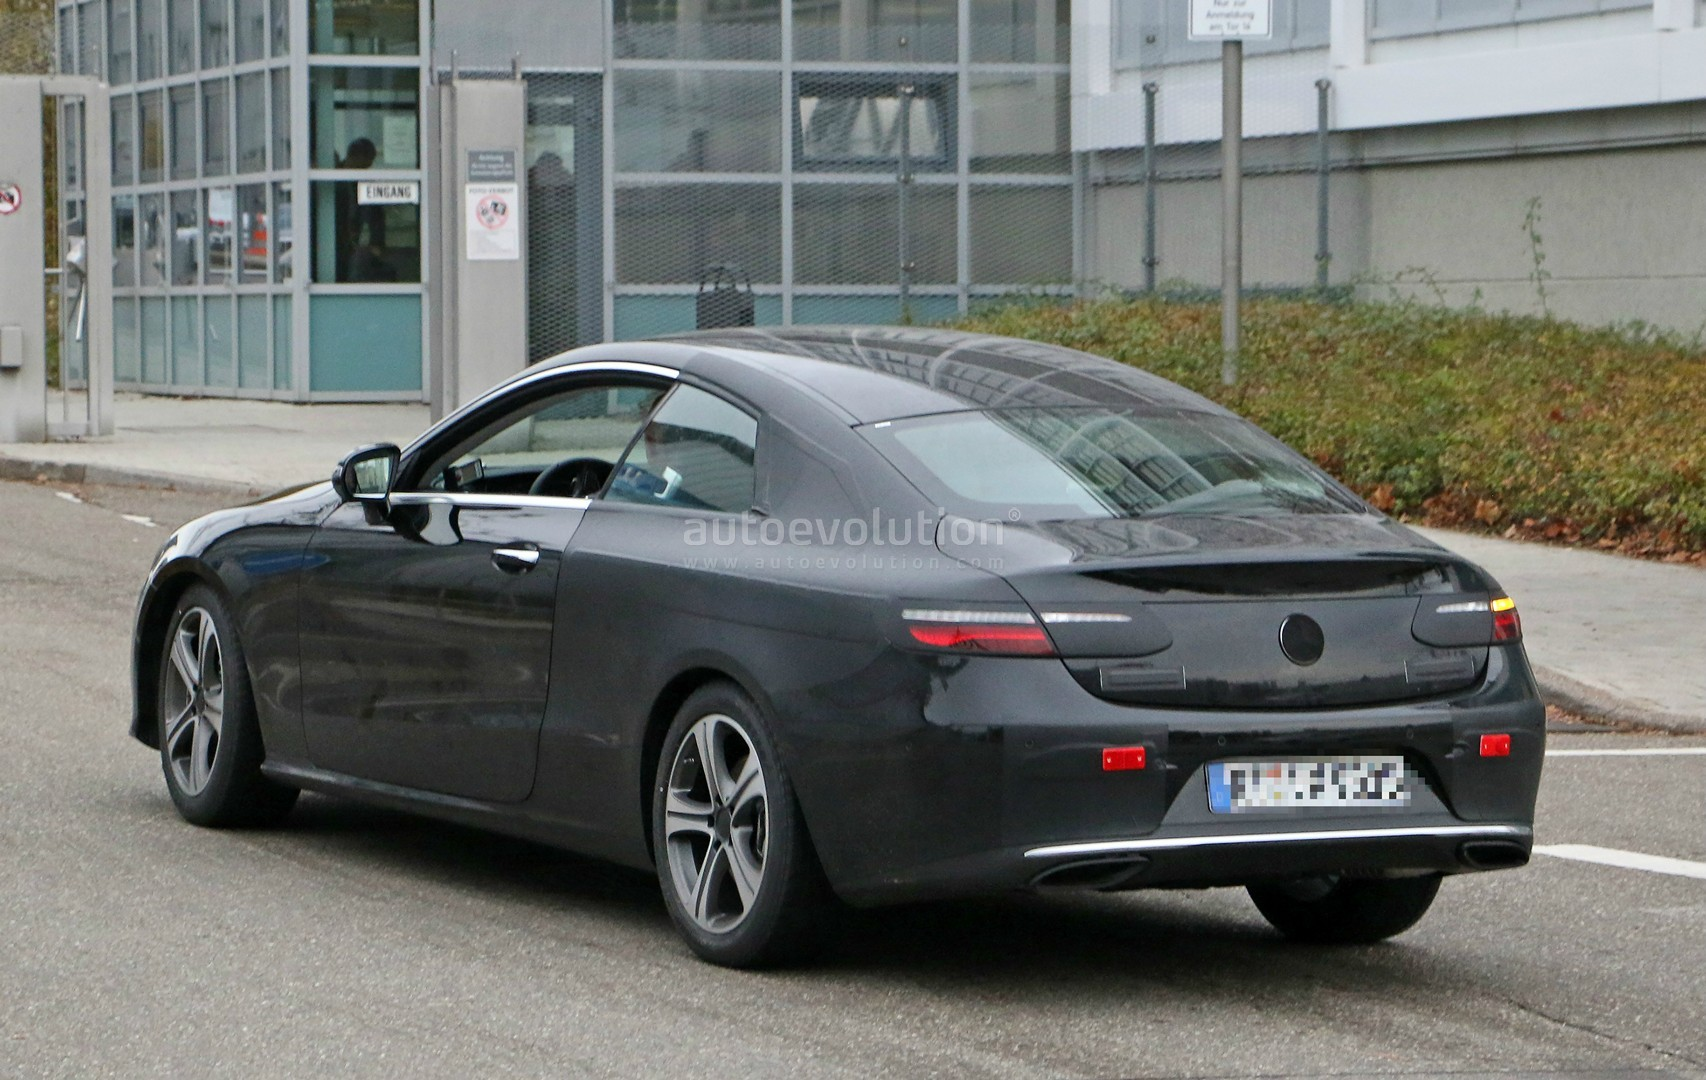 spyshots 2018 mercedes e class coupe spied with analog dials autoevolution. Black Bedroom Furniture Sets. Home Design Ideas